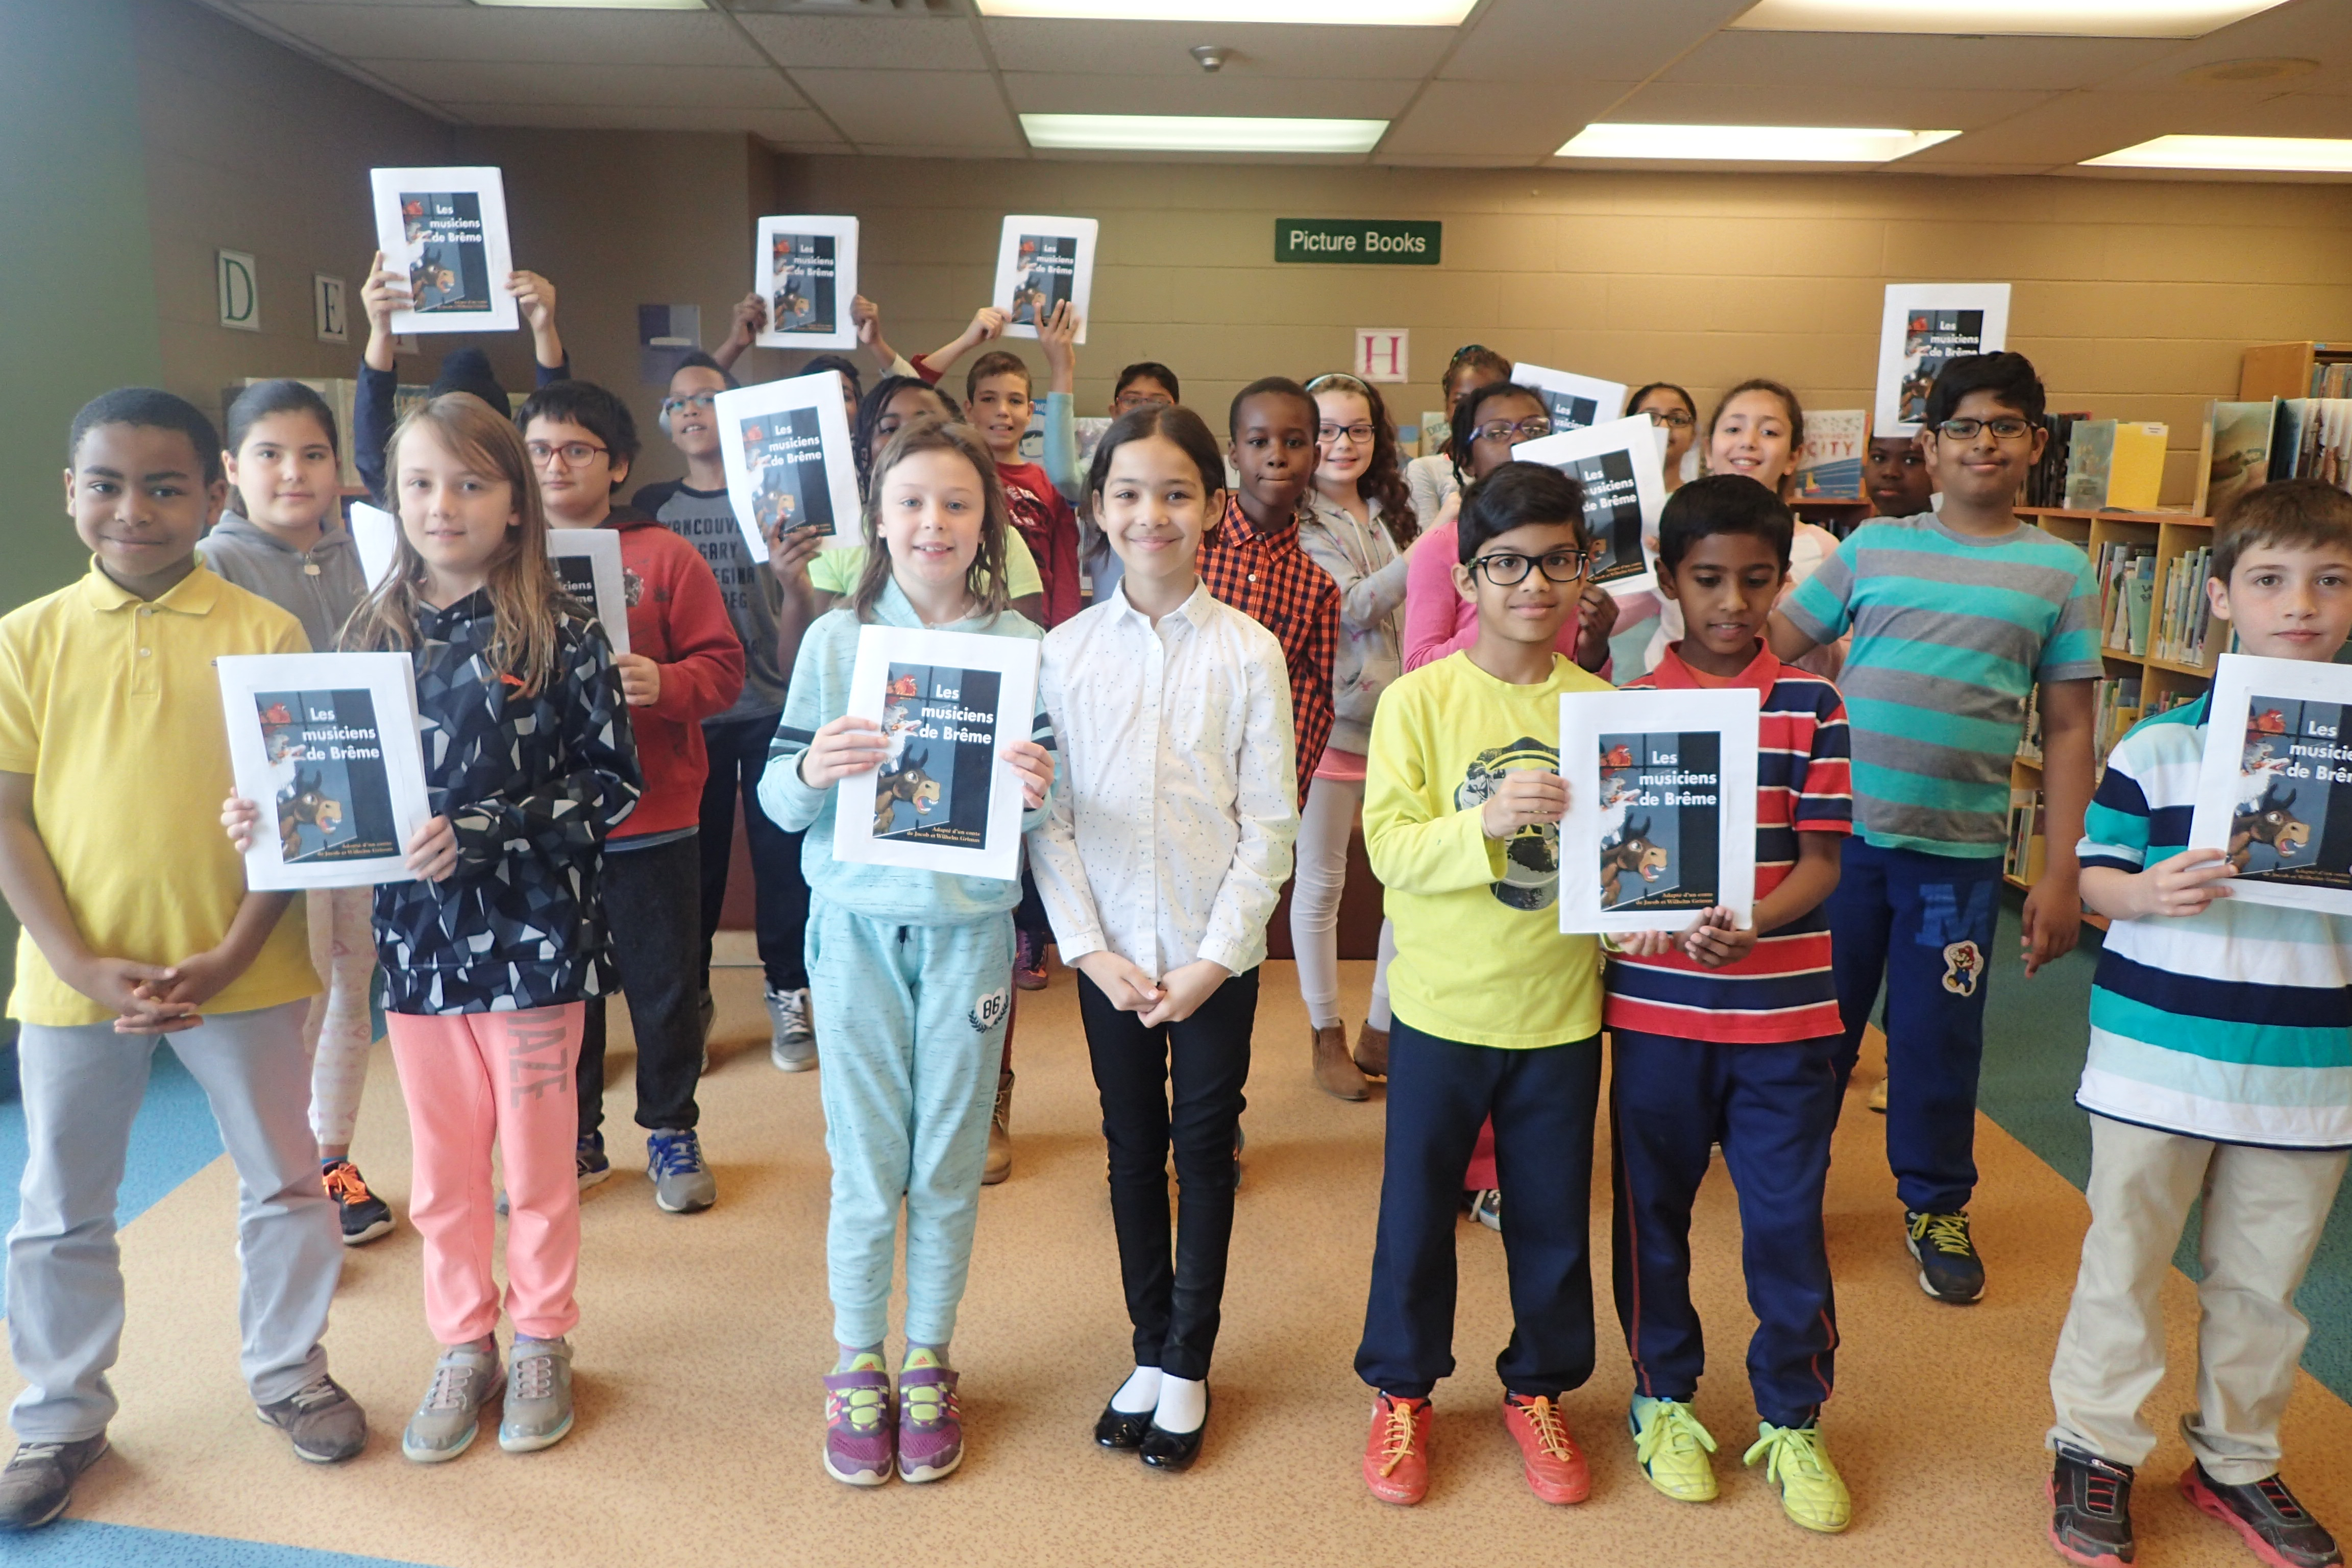 A group of students holding up French picture book titled 'Les musiciens de Brême'